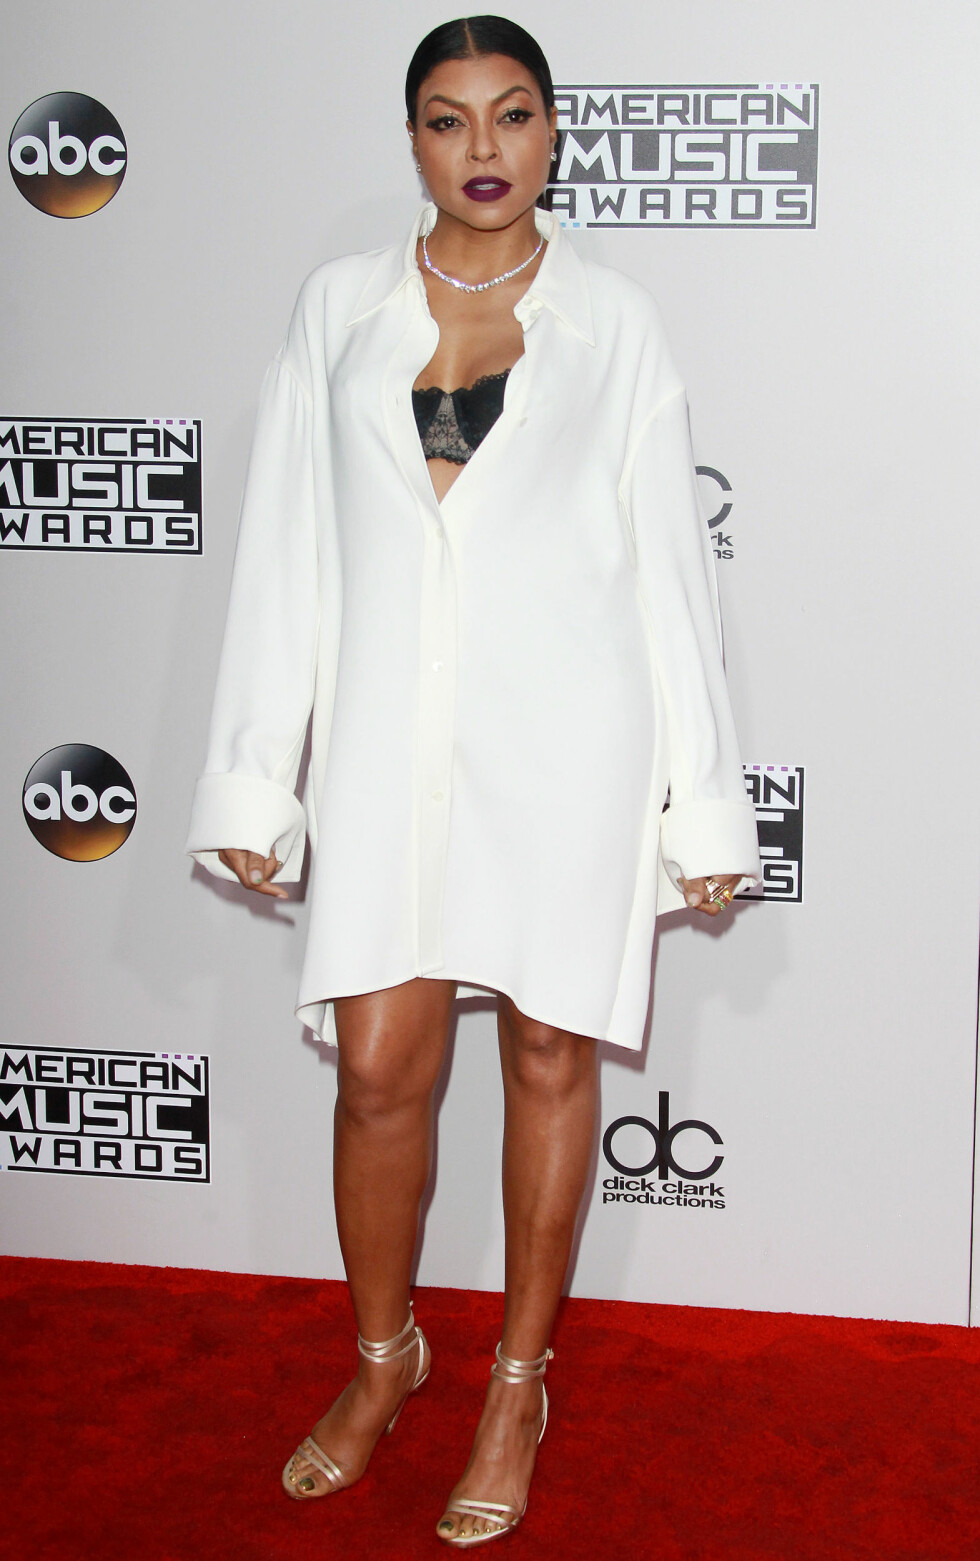 AMERICAN MUSIC AWARDS: Taraji P. Henson Foto: Broadimage